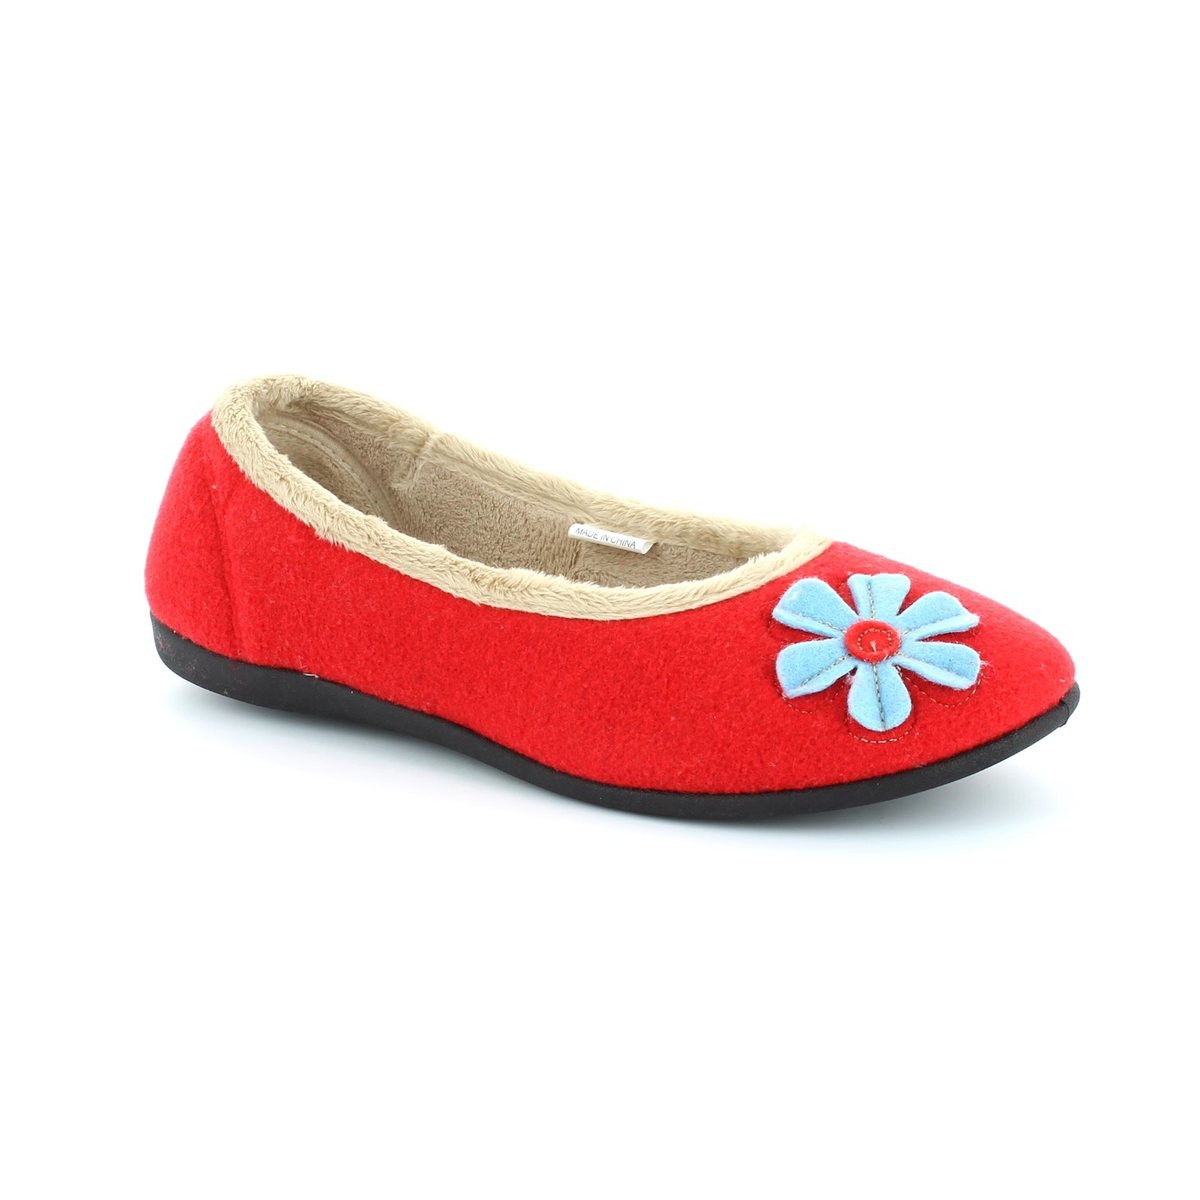 fe9bd68b9a2a6 Padders Slippers - Red multi - 464/44 HAPPY E FIT